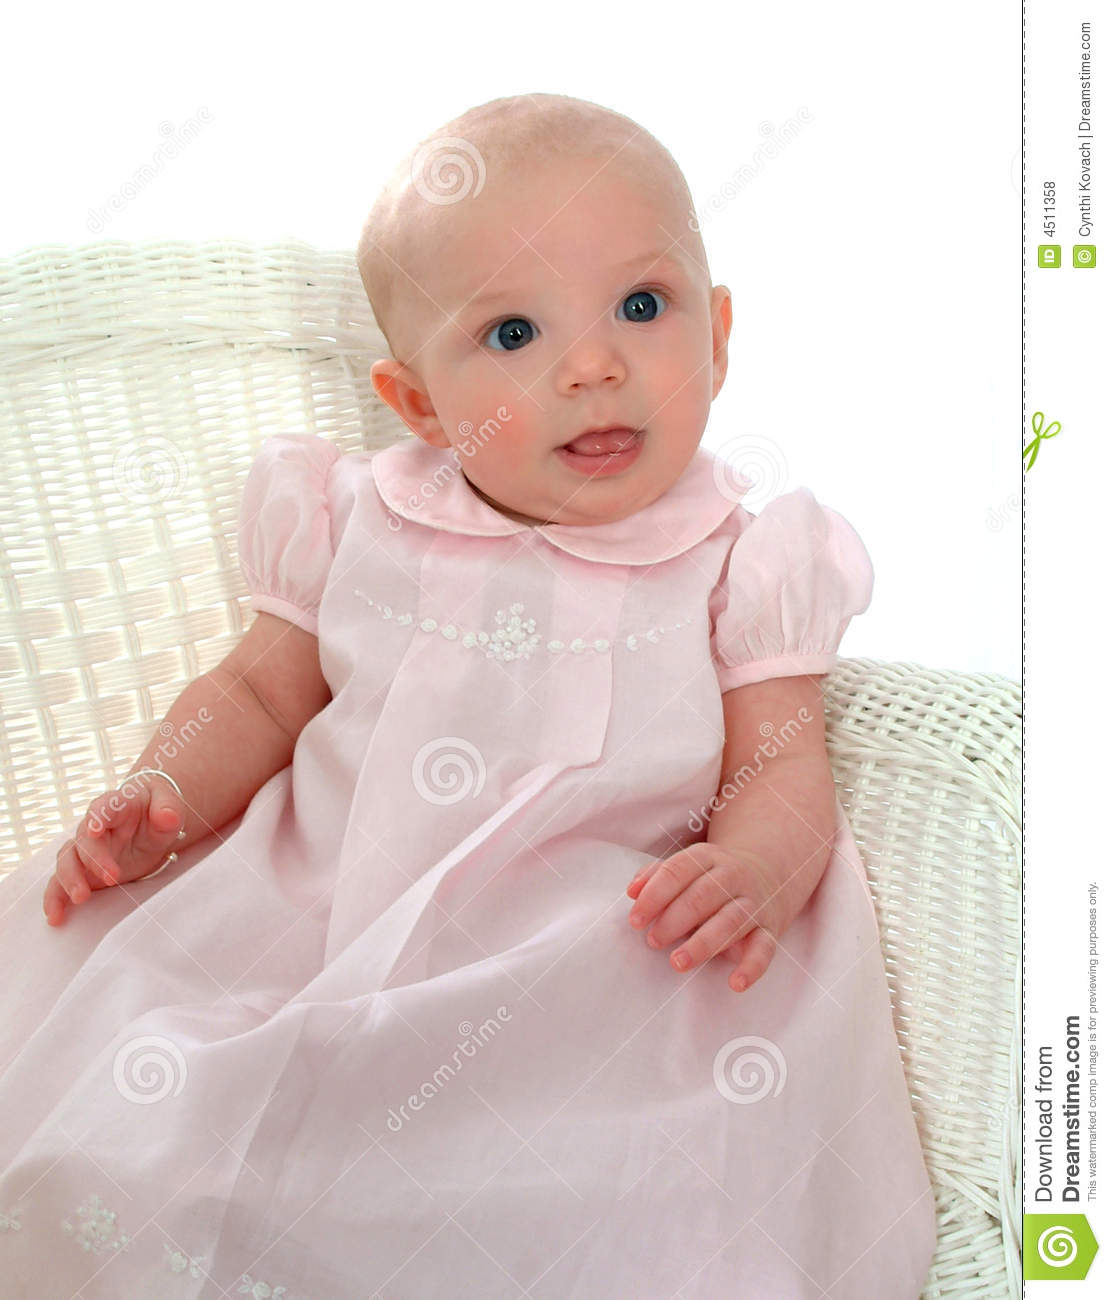 baby bamboo chair best bean bag chairs for dorms in white wicker stock photography